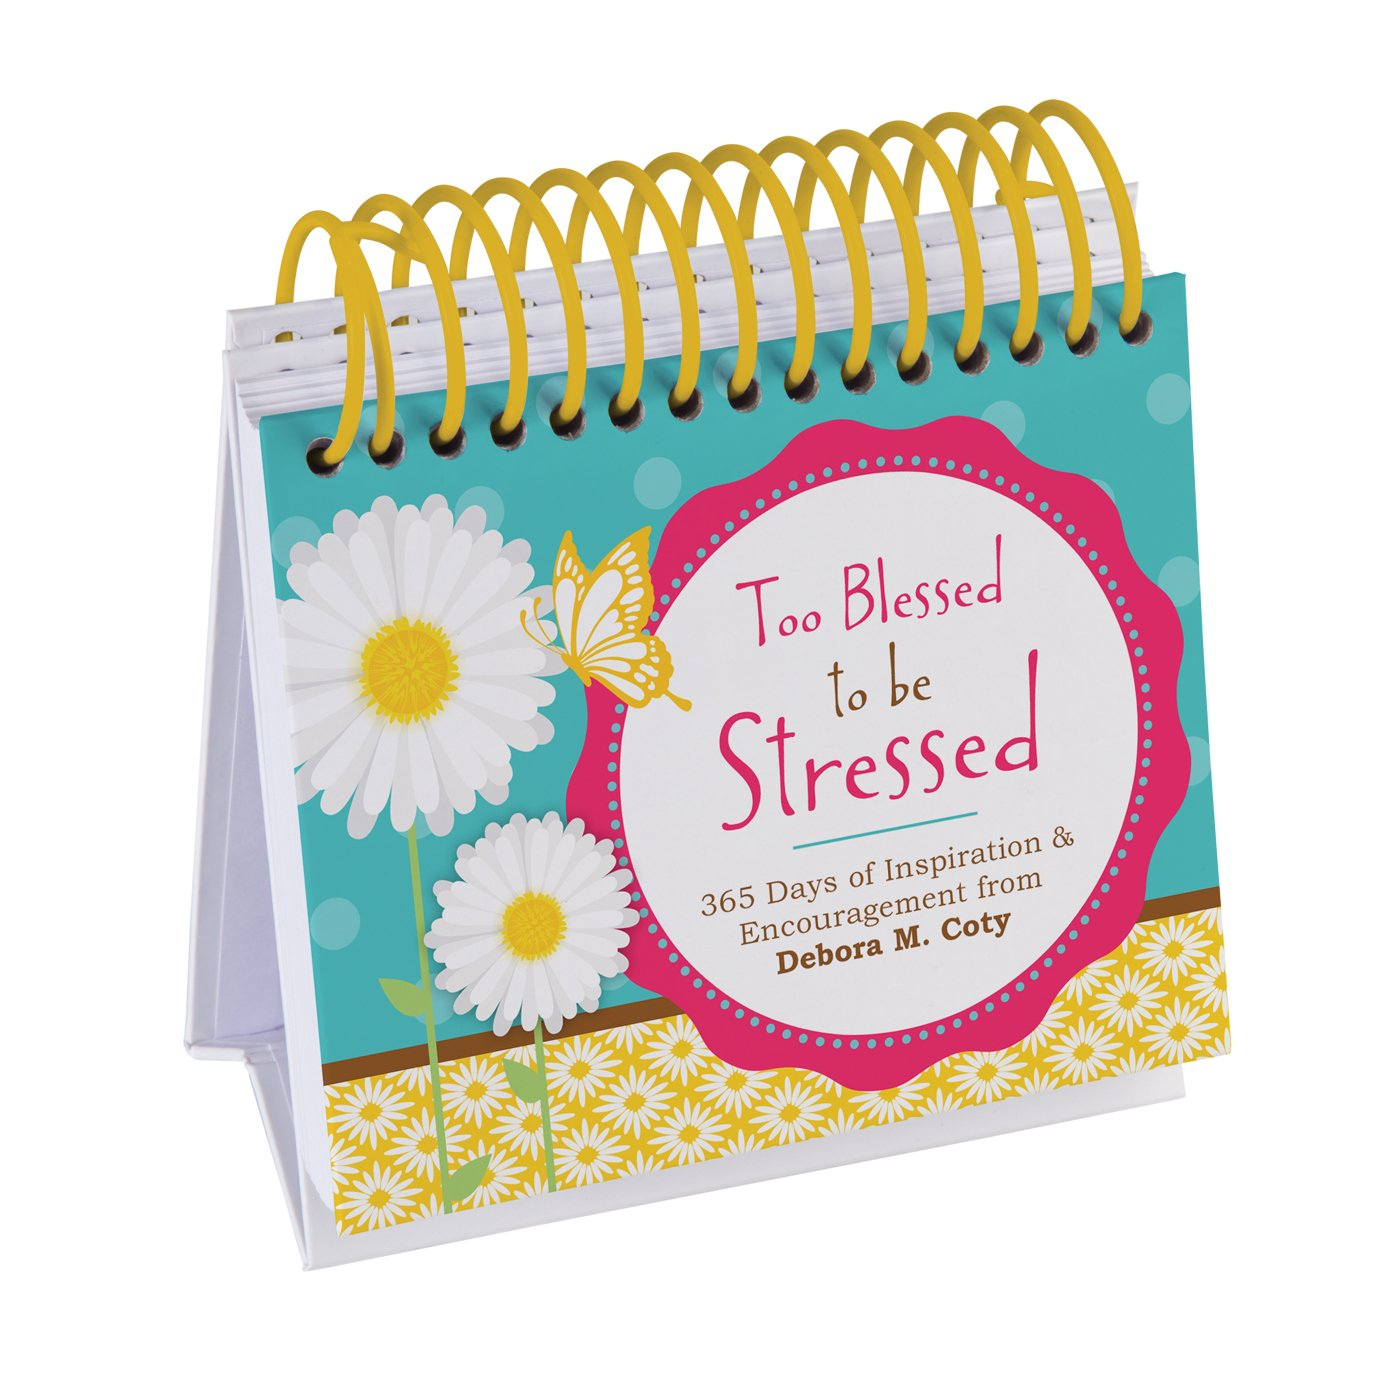 Download Too Blessed to Be Stressed Perpetual Calendar: 365 Days of Inspiration and Encouragement from Debora M. Coty ebook